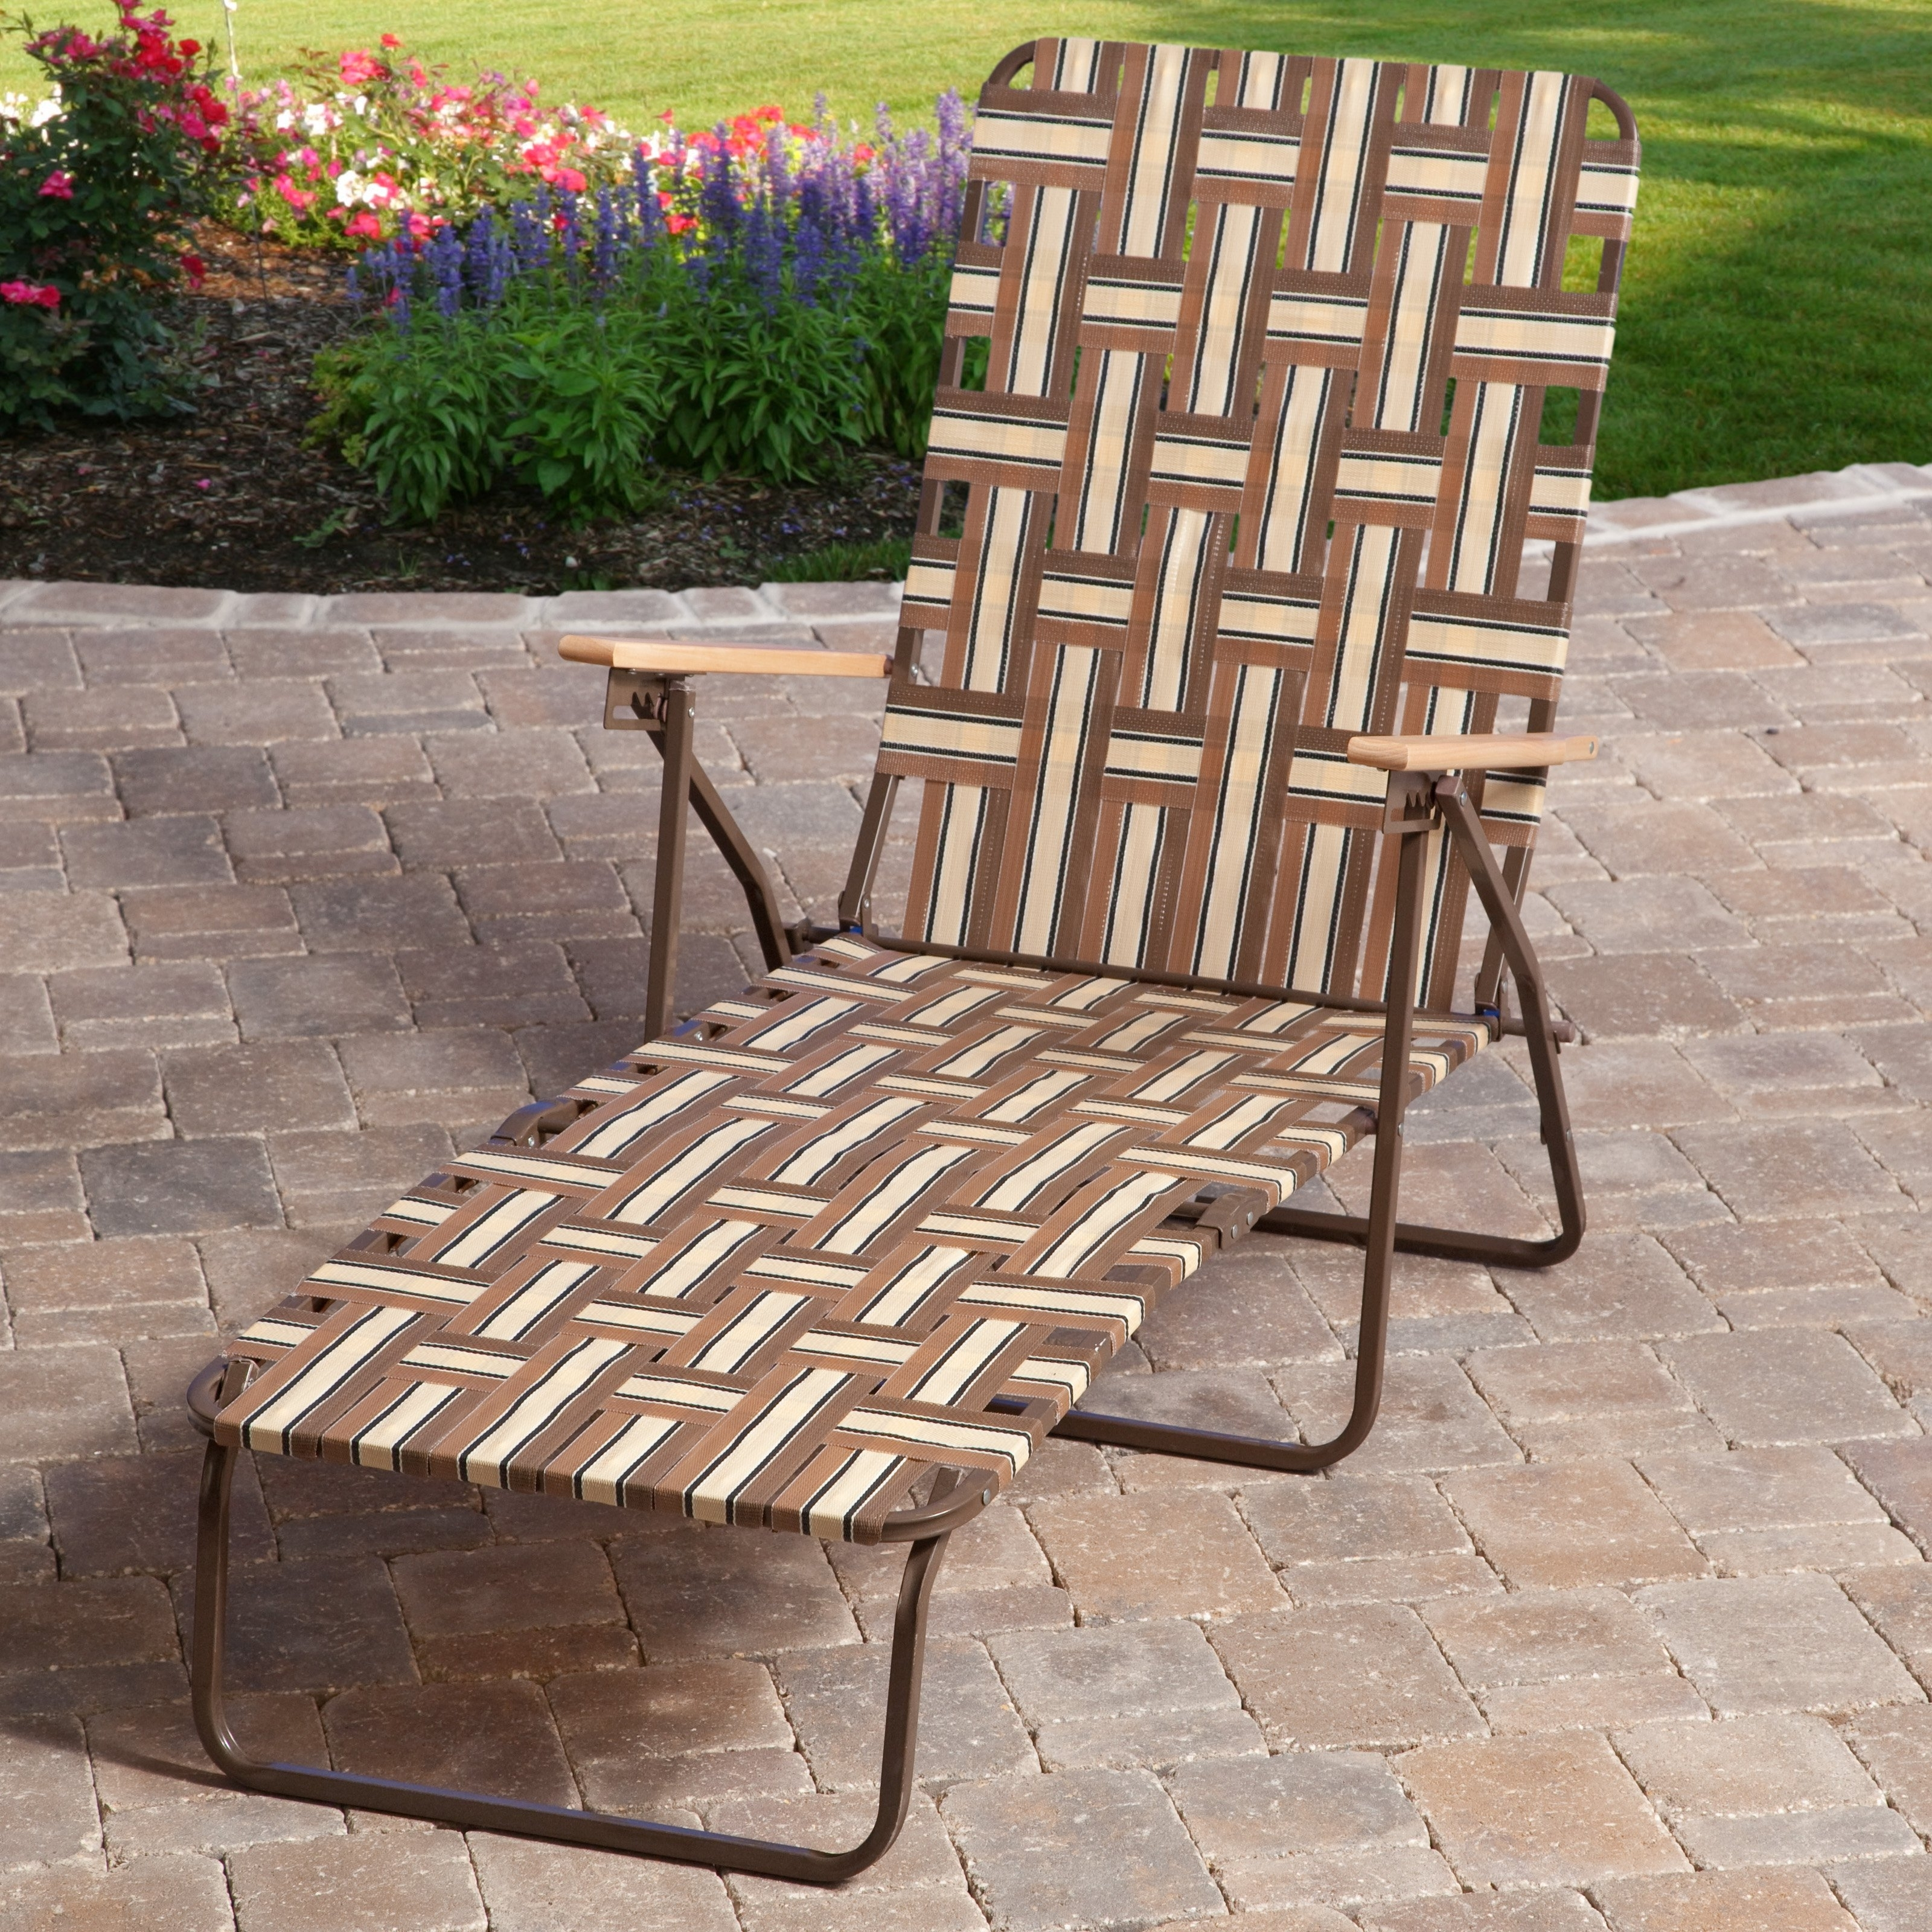 Trendy Rio Deluxe Folding Web Chaise Lounge – Walmart Throughout Walmart Chaise Lounge Chairs (View 11 of 15)